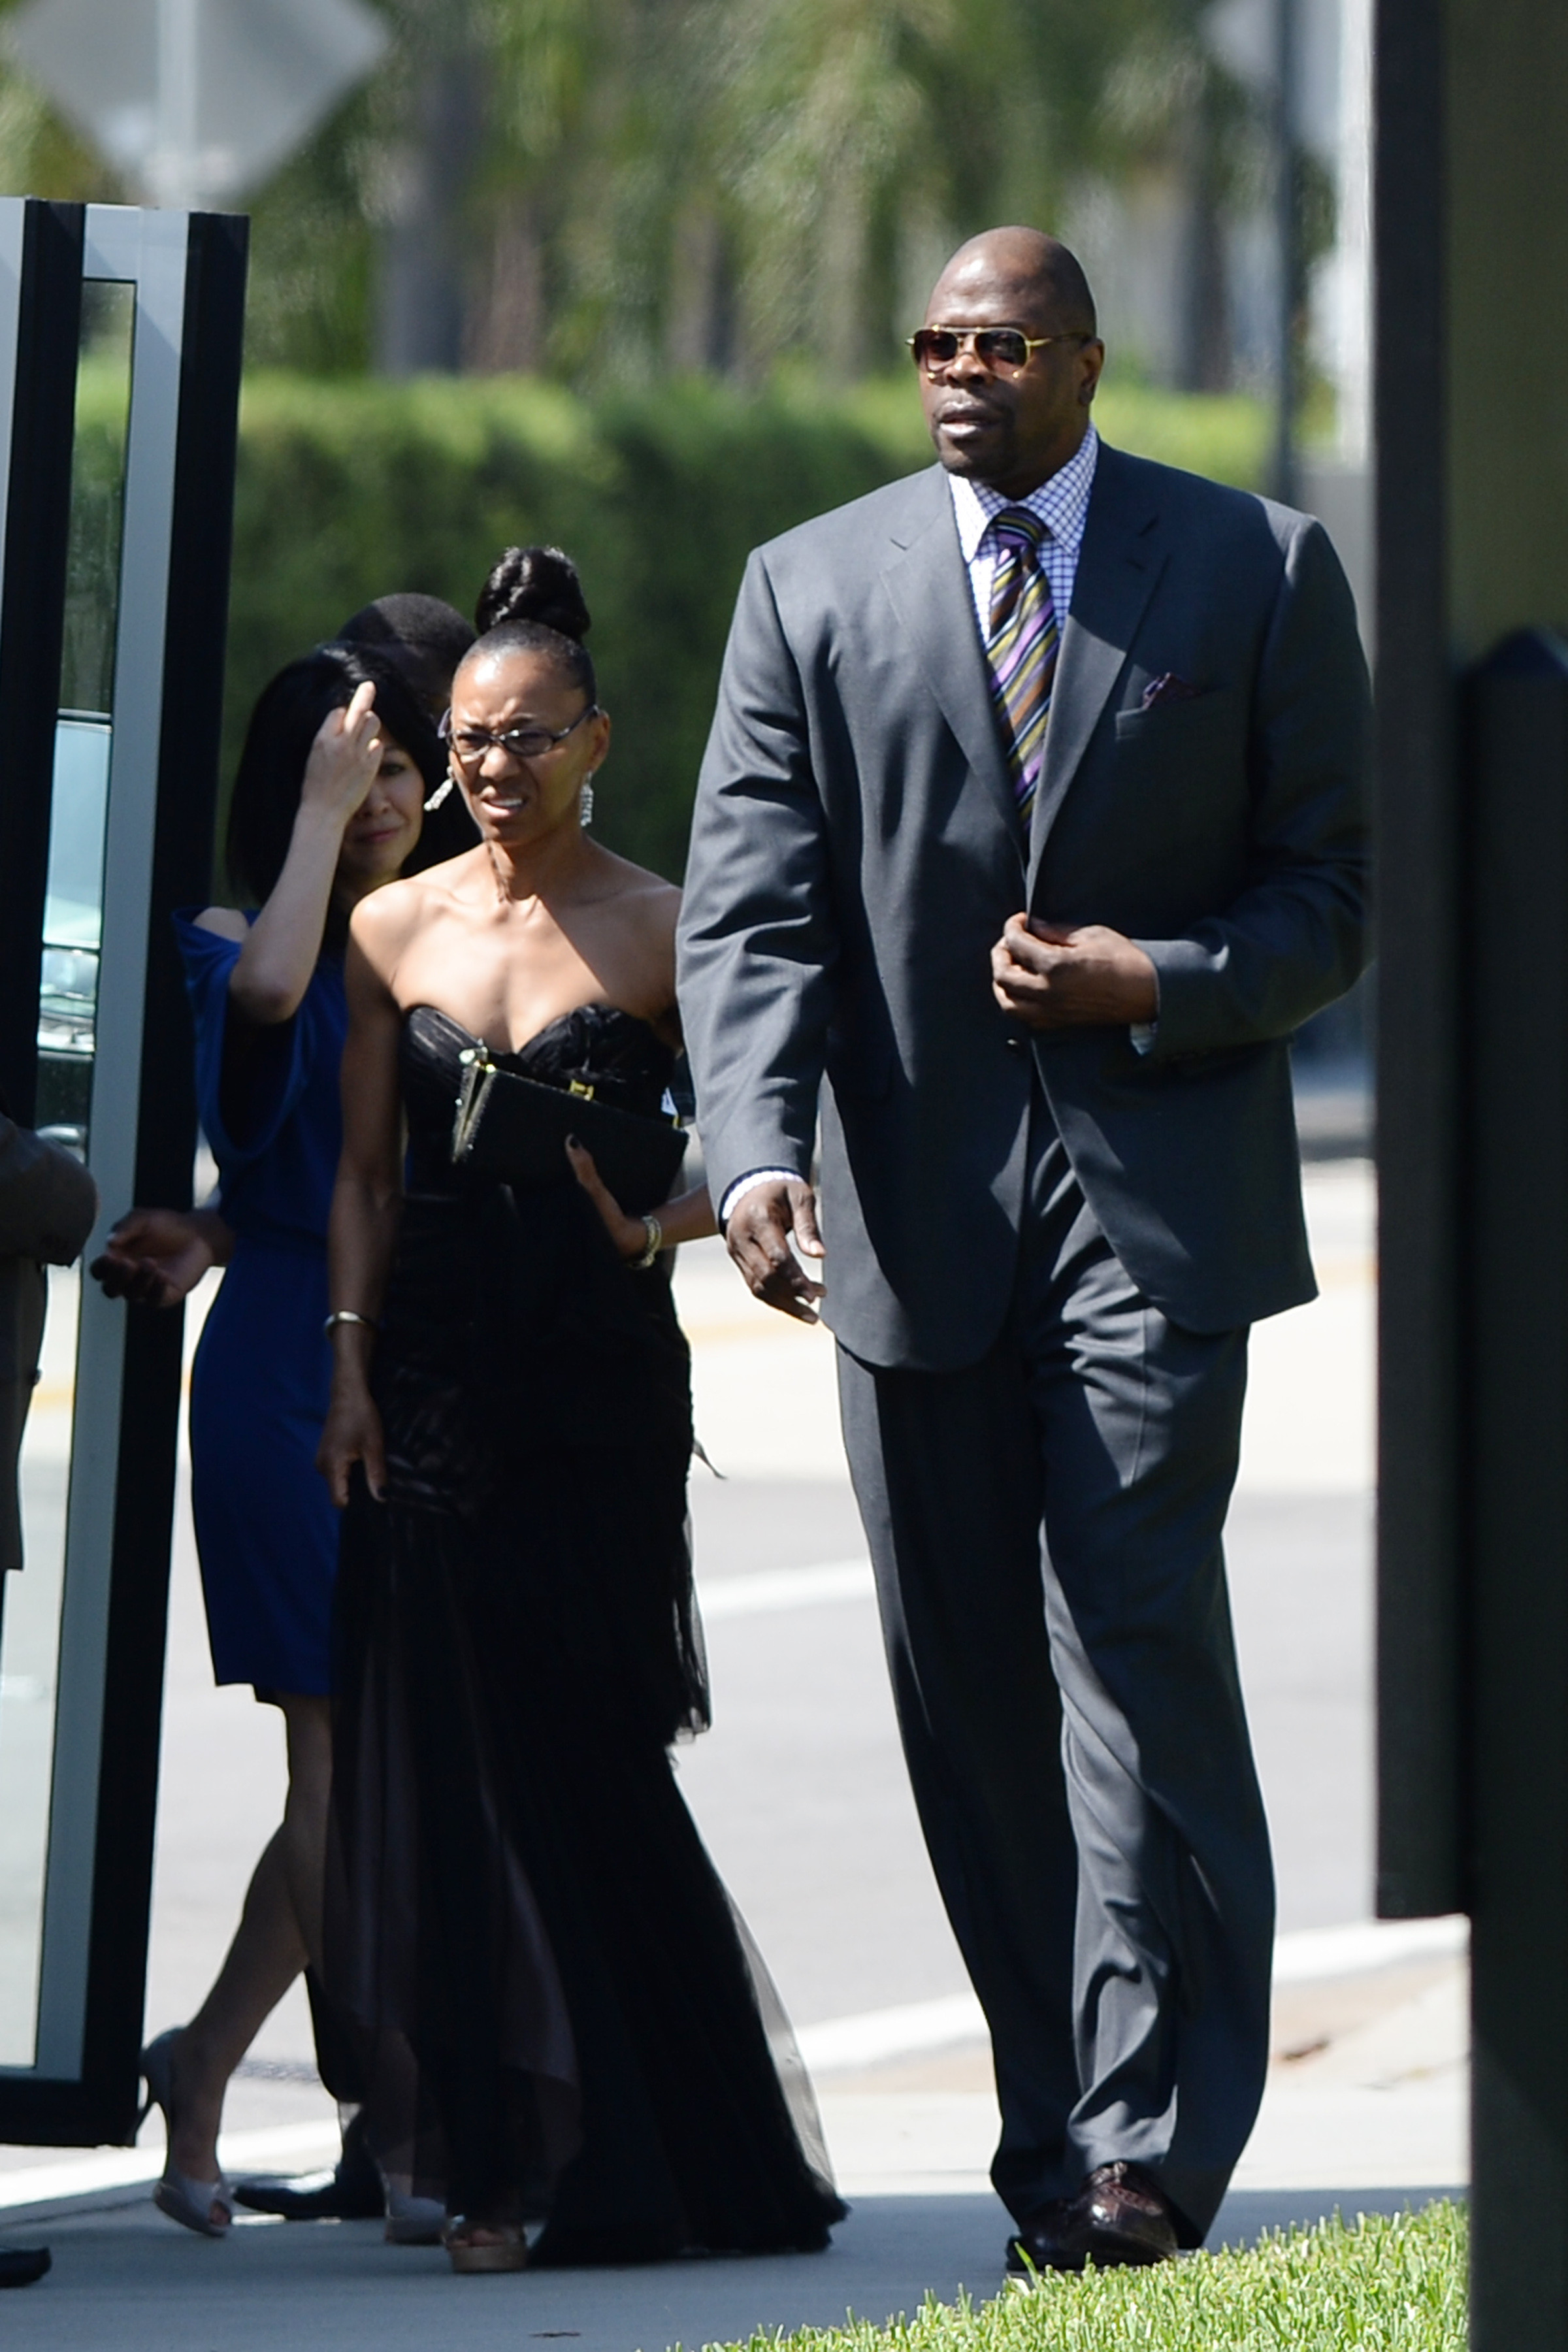 NBA Greats Look On As Jordan Marries Long-Time Girlfriend